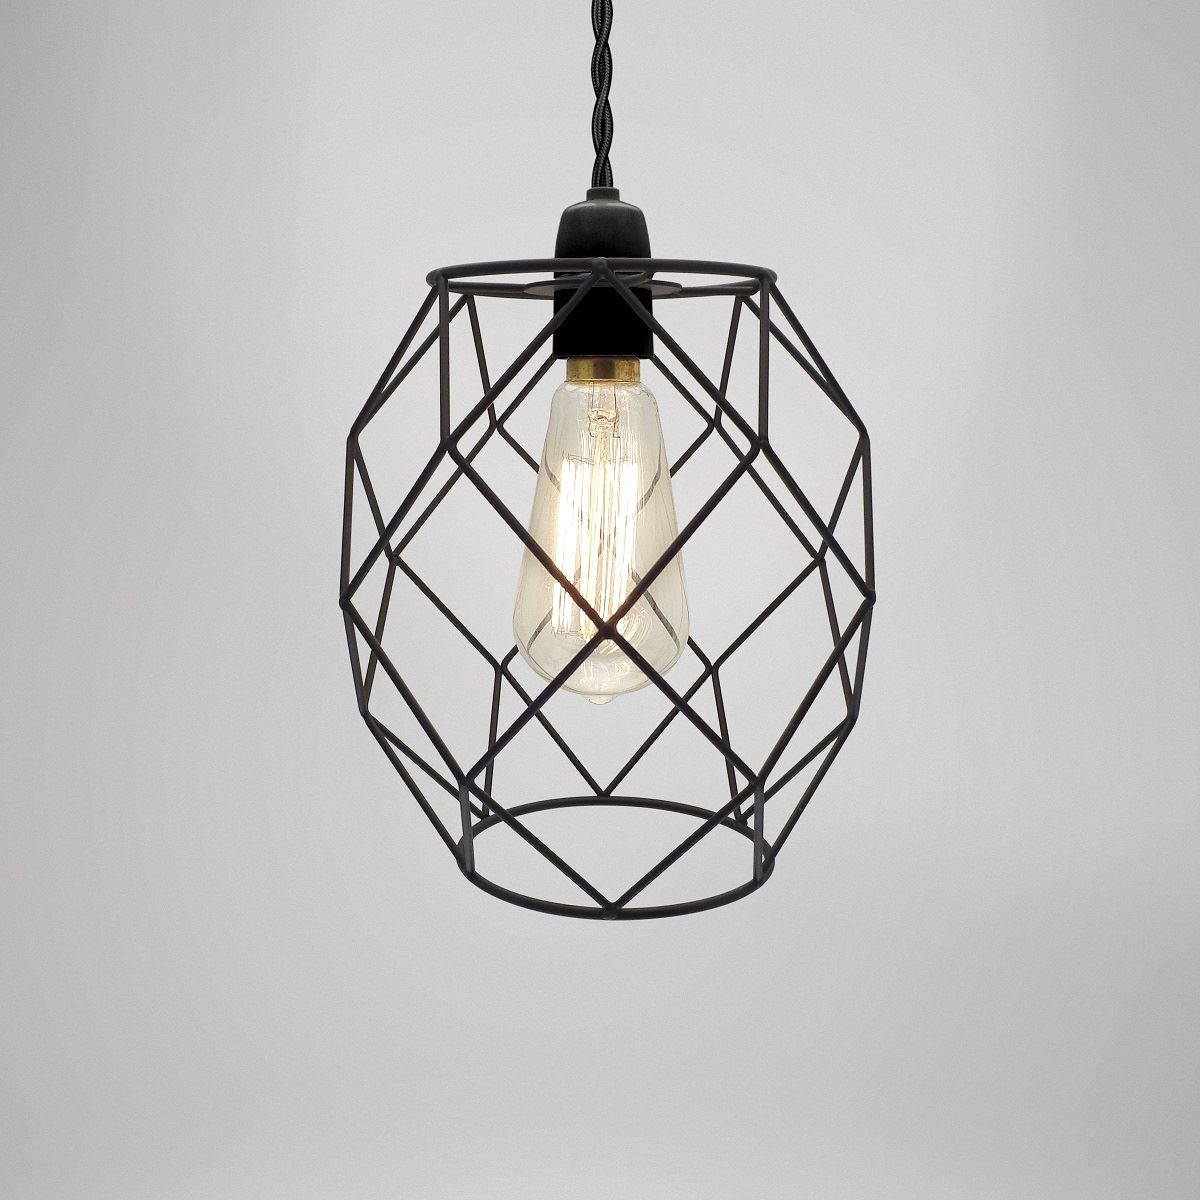 Modern Industrial Black White Copper Metal Cage Wire Pendant Light ...